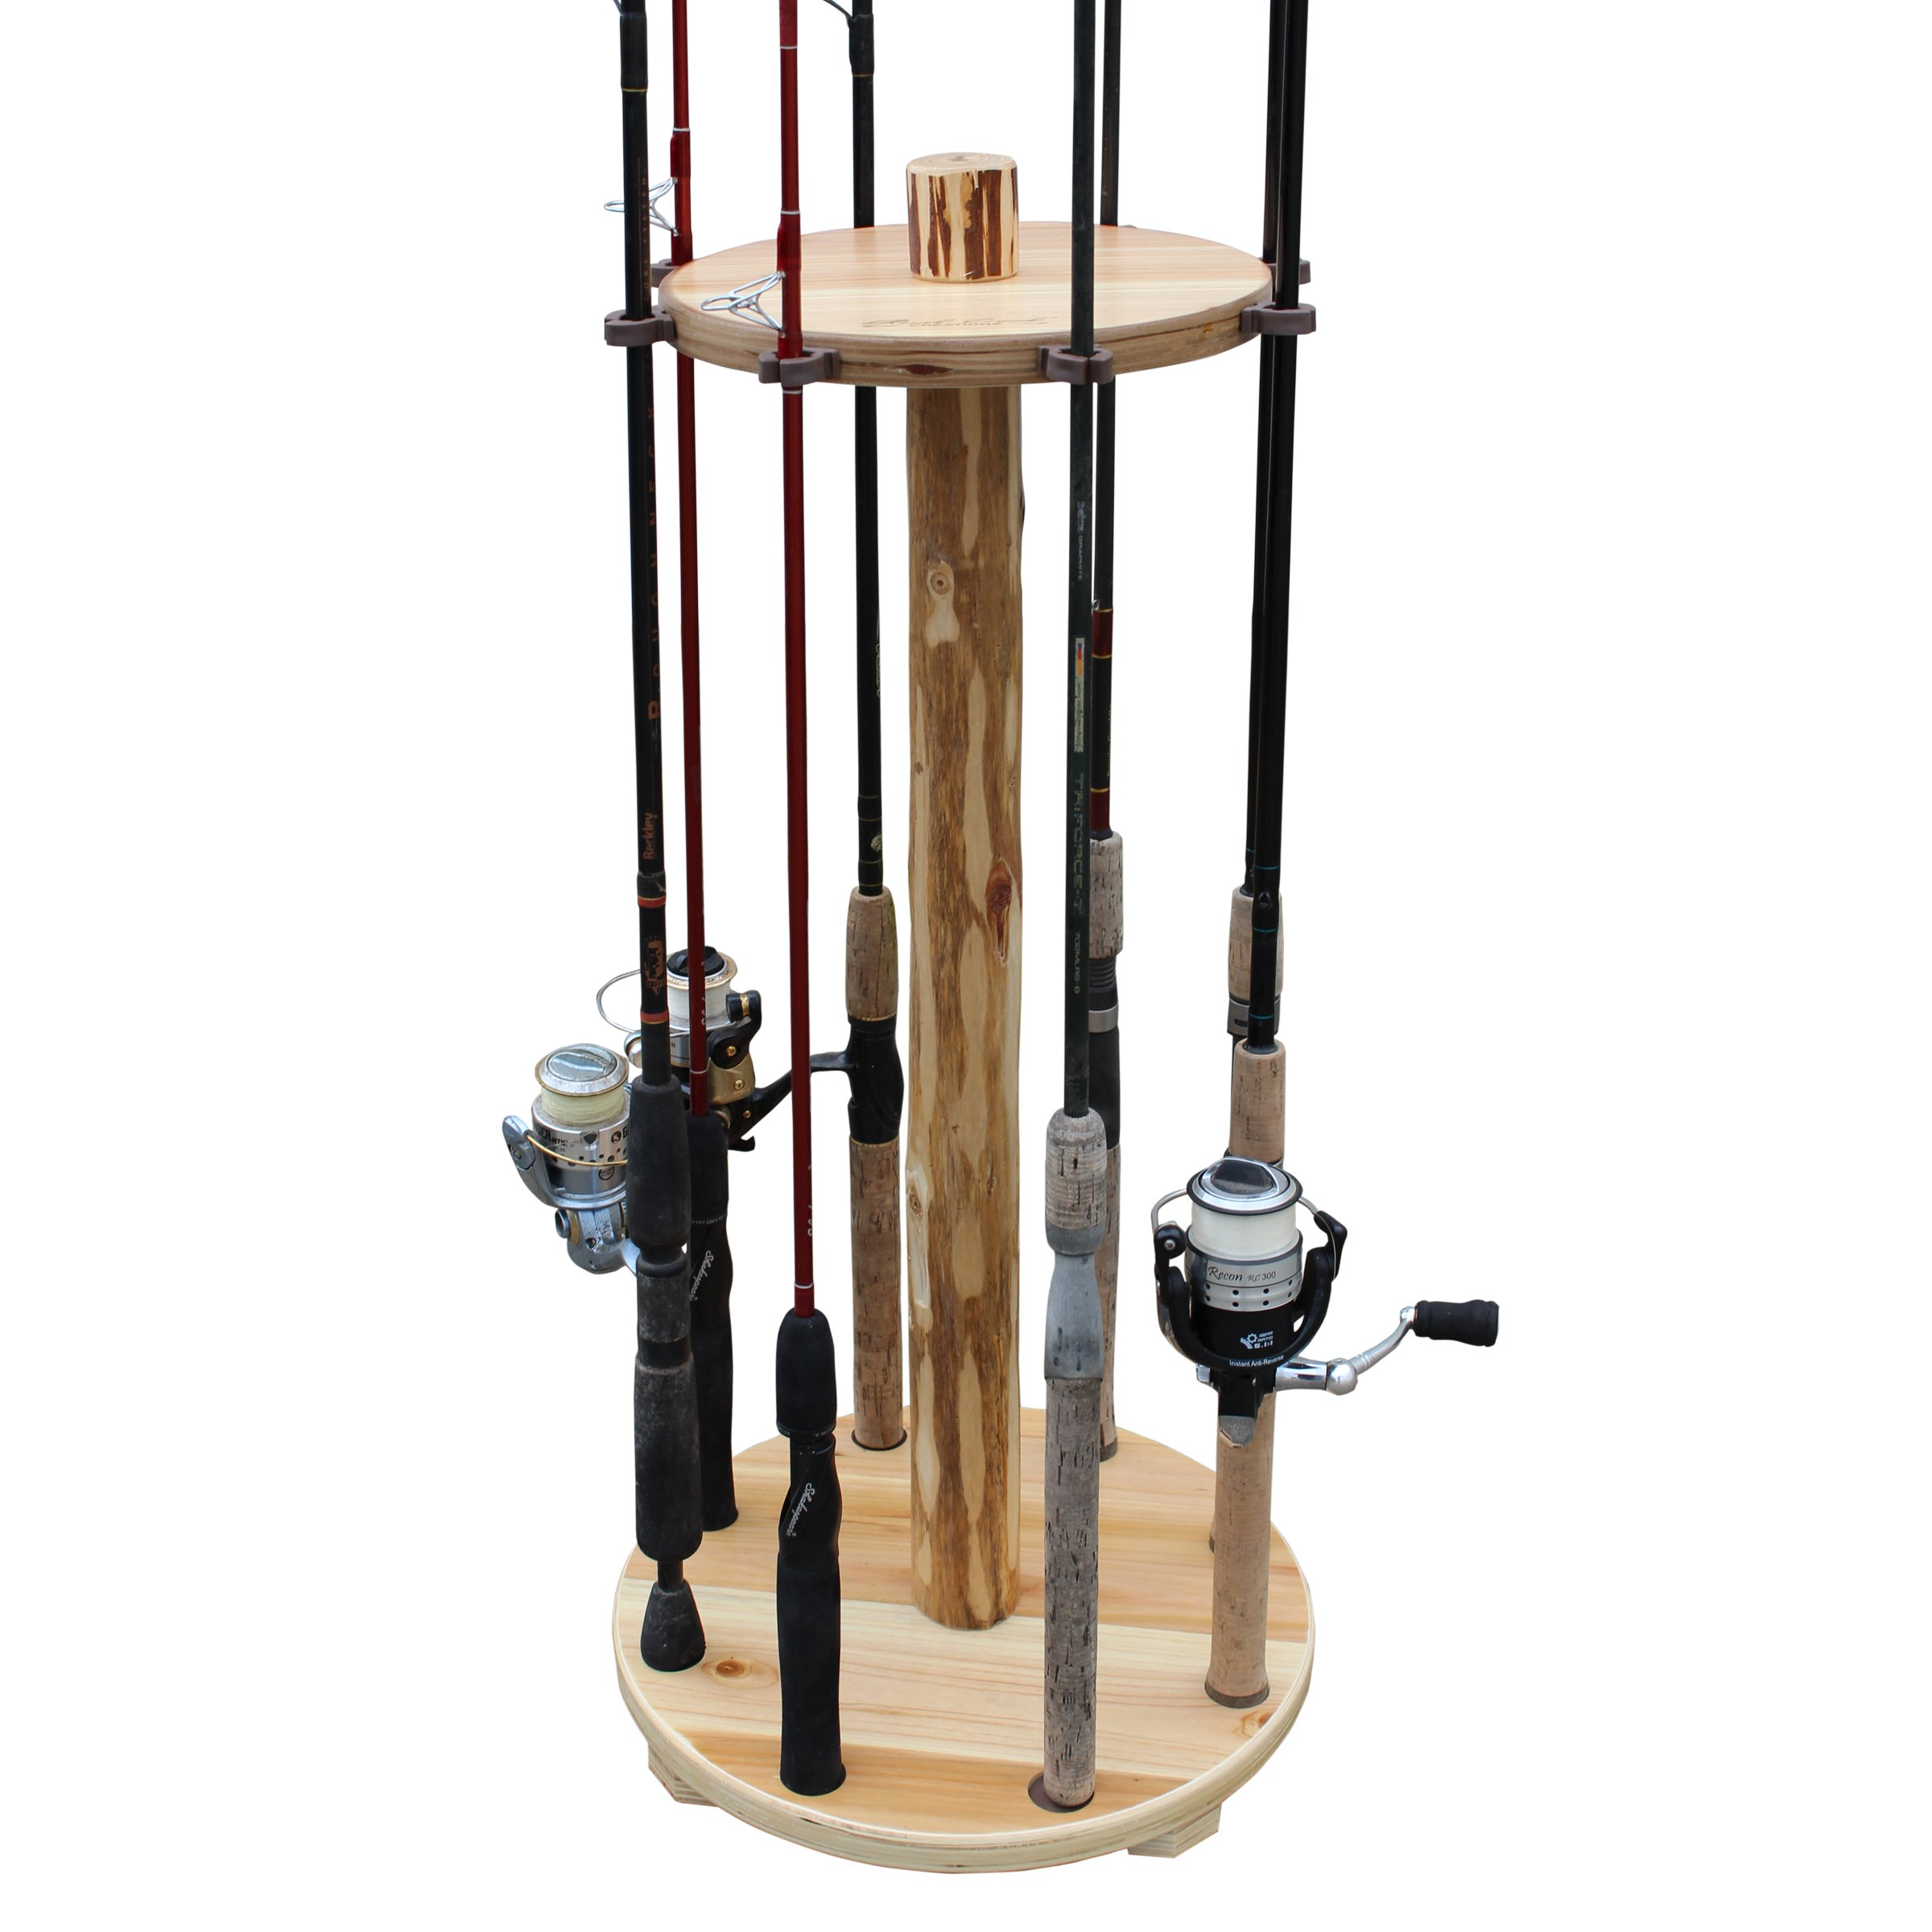 Rush Creek Creations Rustic Round 8 Fishing Rod Storage Rack